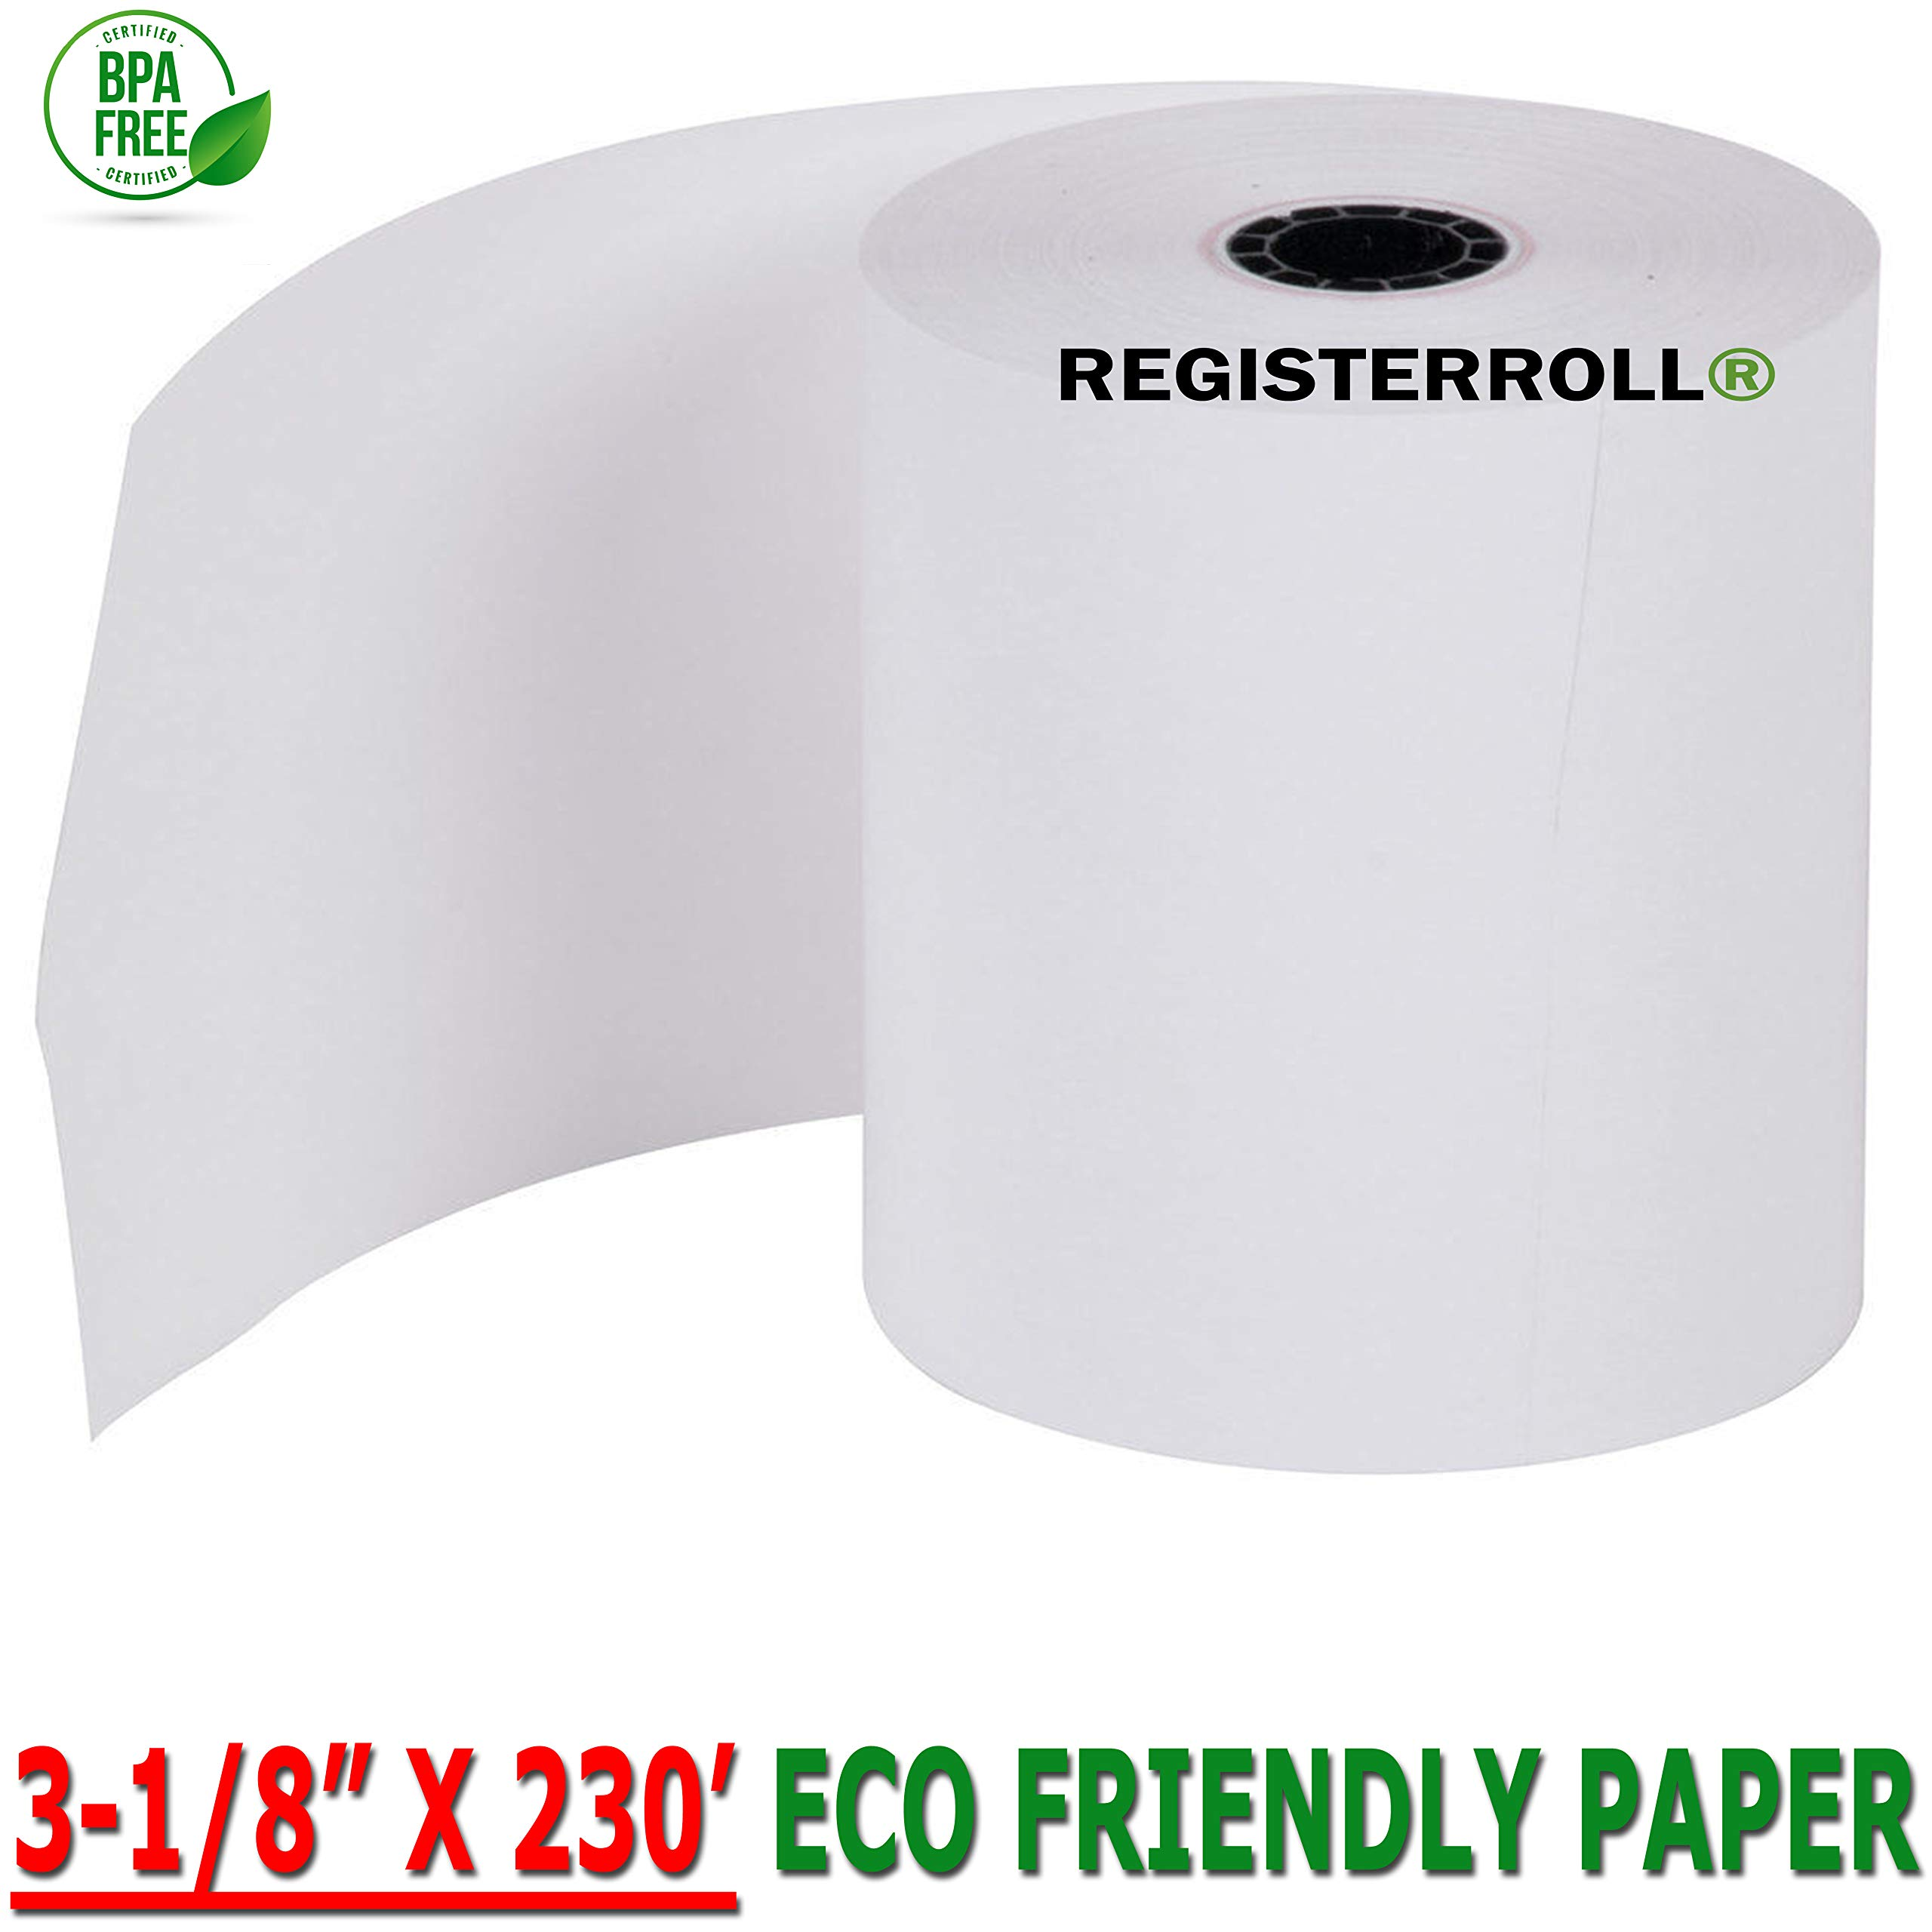 REGISTERROLL - Clover Thermal Station Printer P100 Thermal 3 1/8 Inch x 230' Paper 50 Rolls BPA Free Made in USA